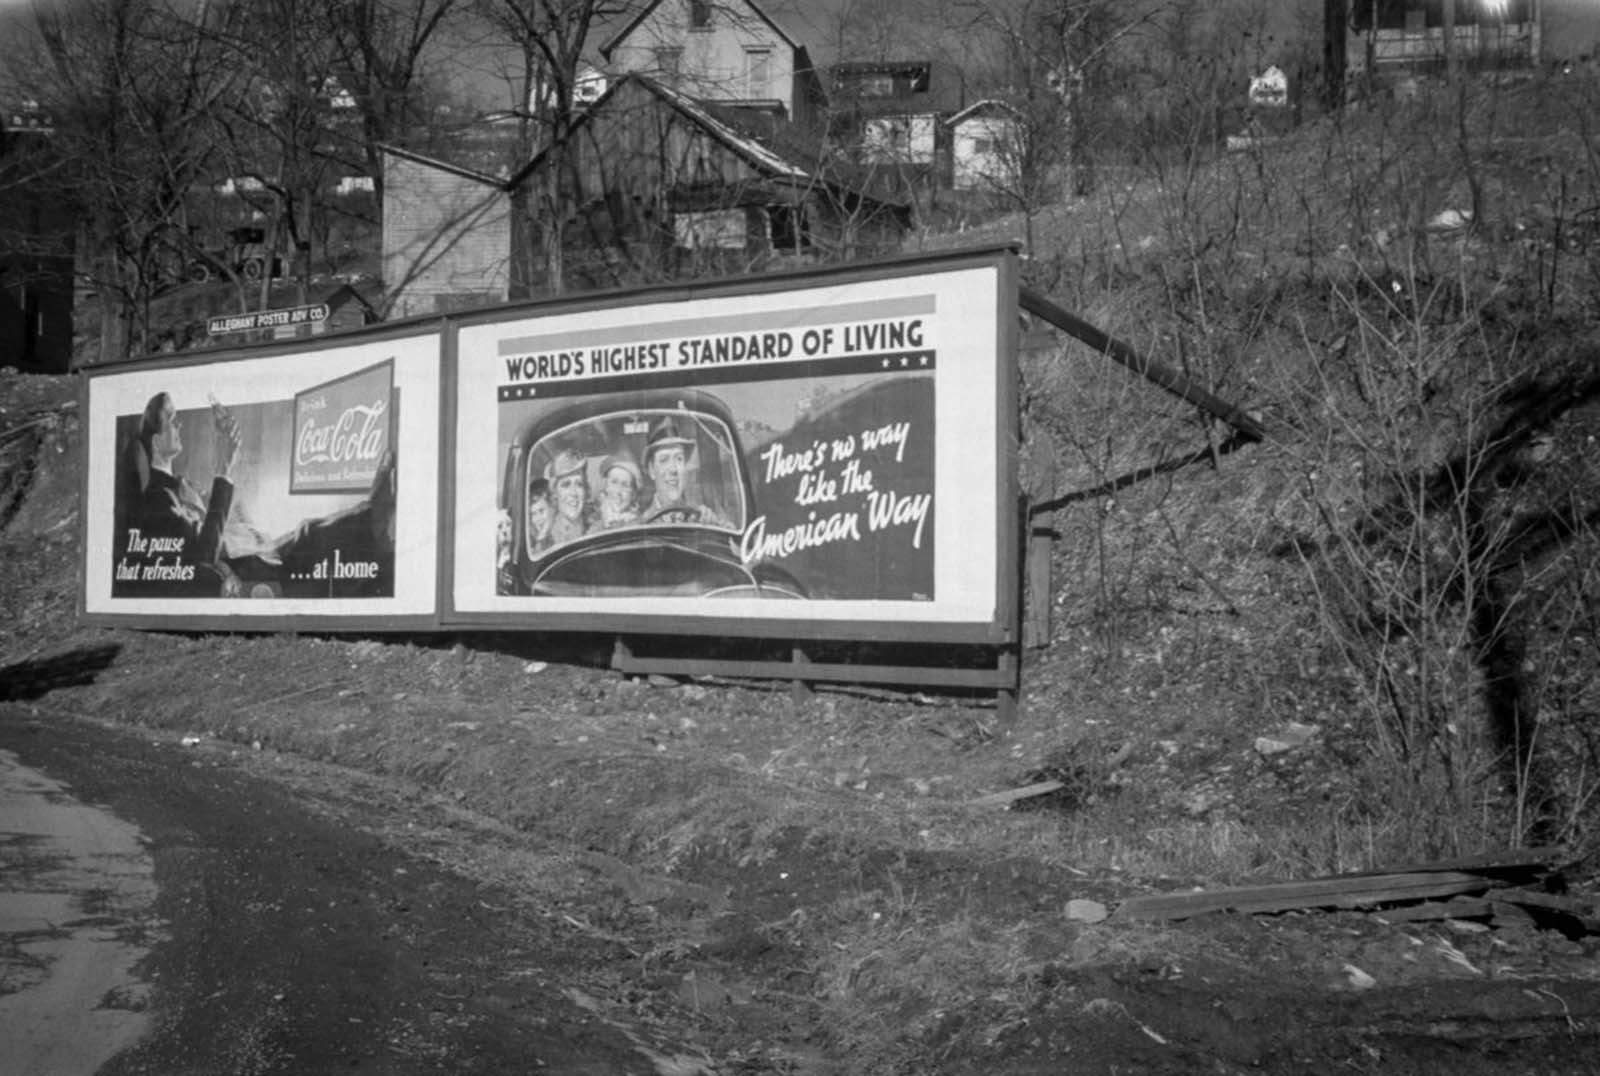 Near Kingwood, West Virginia. 1937.